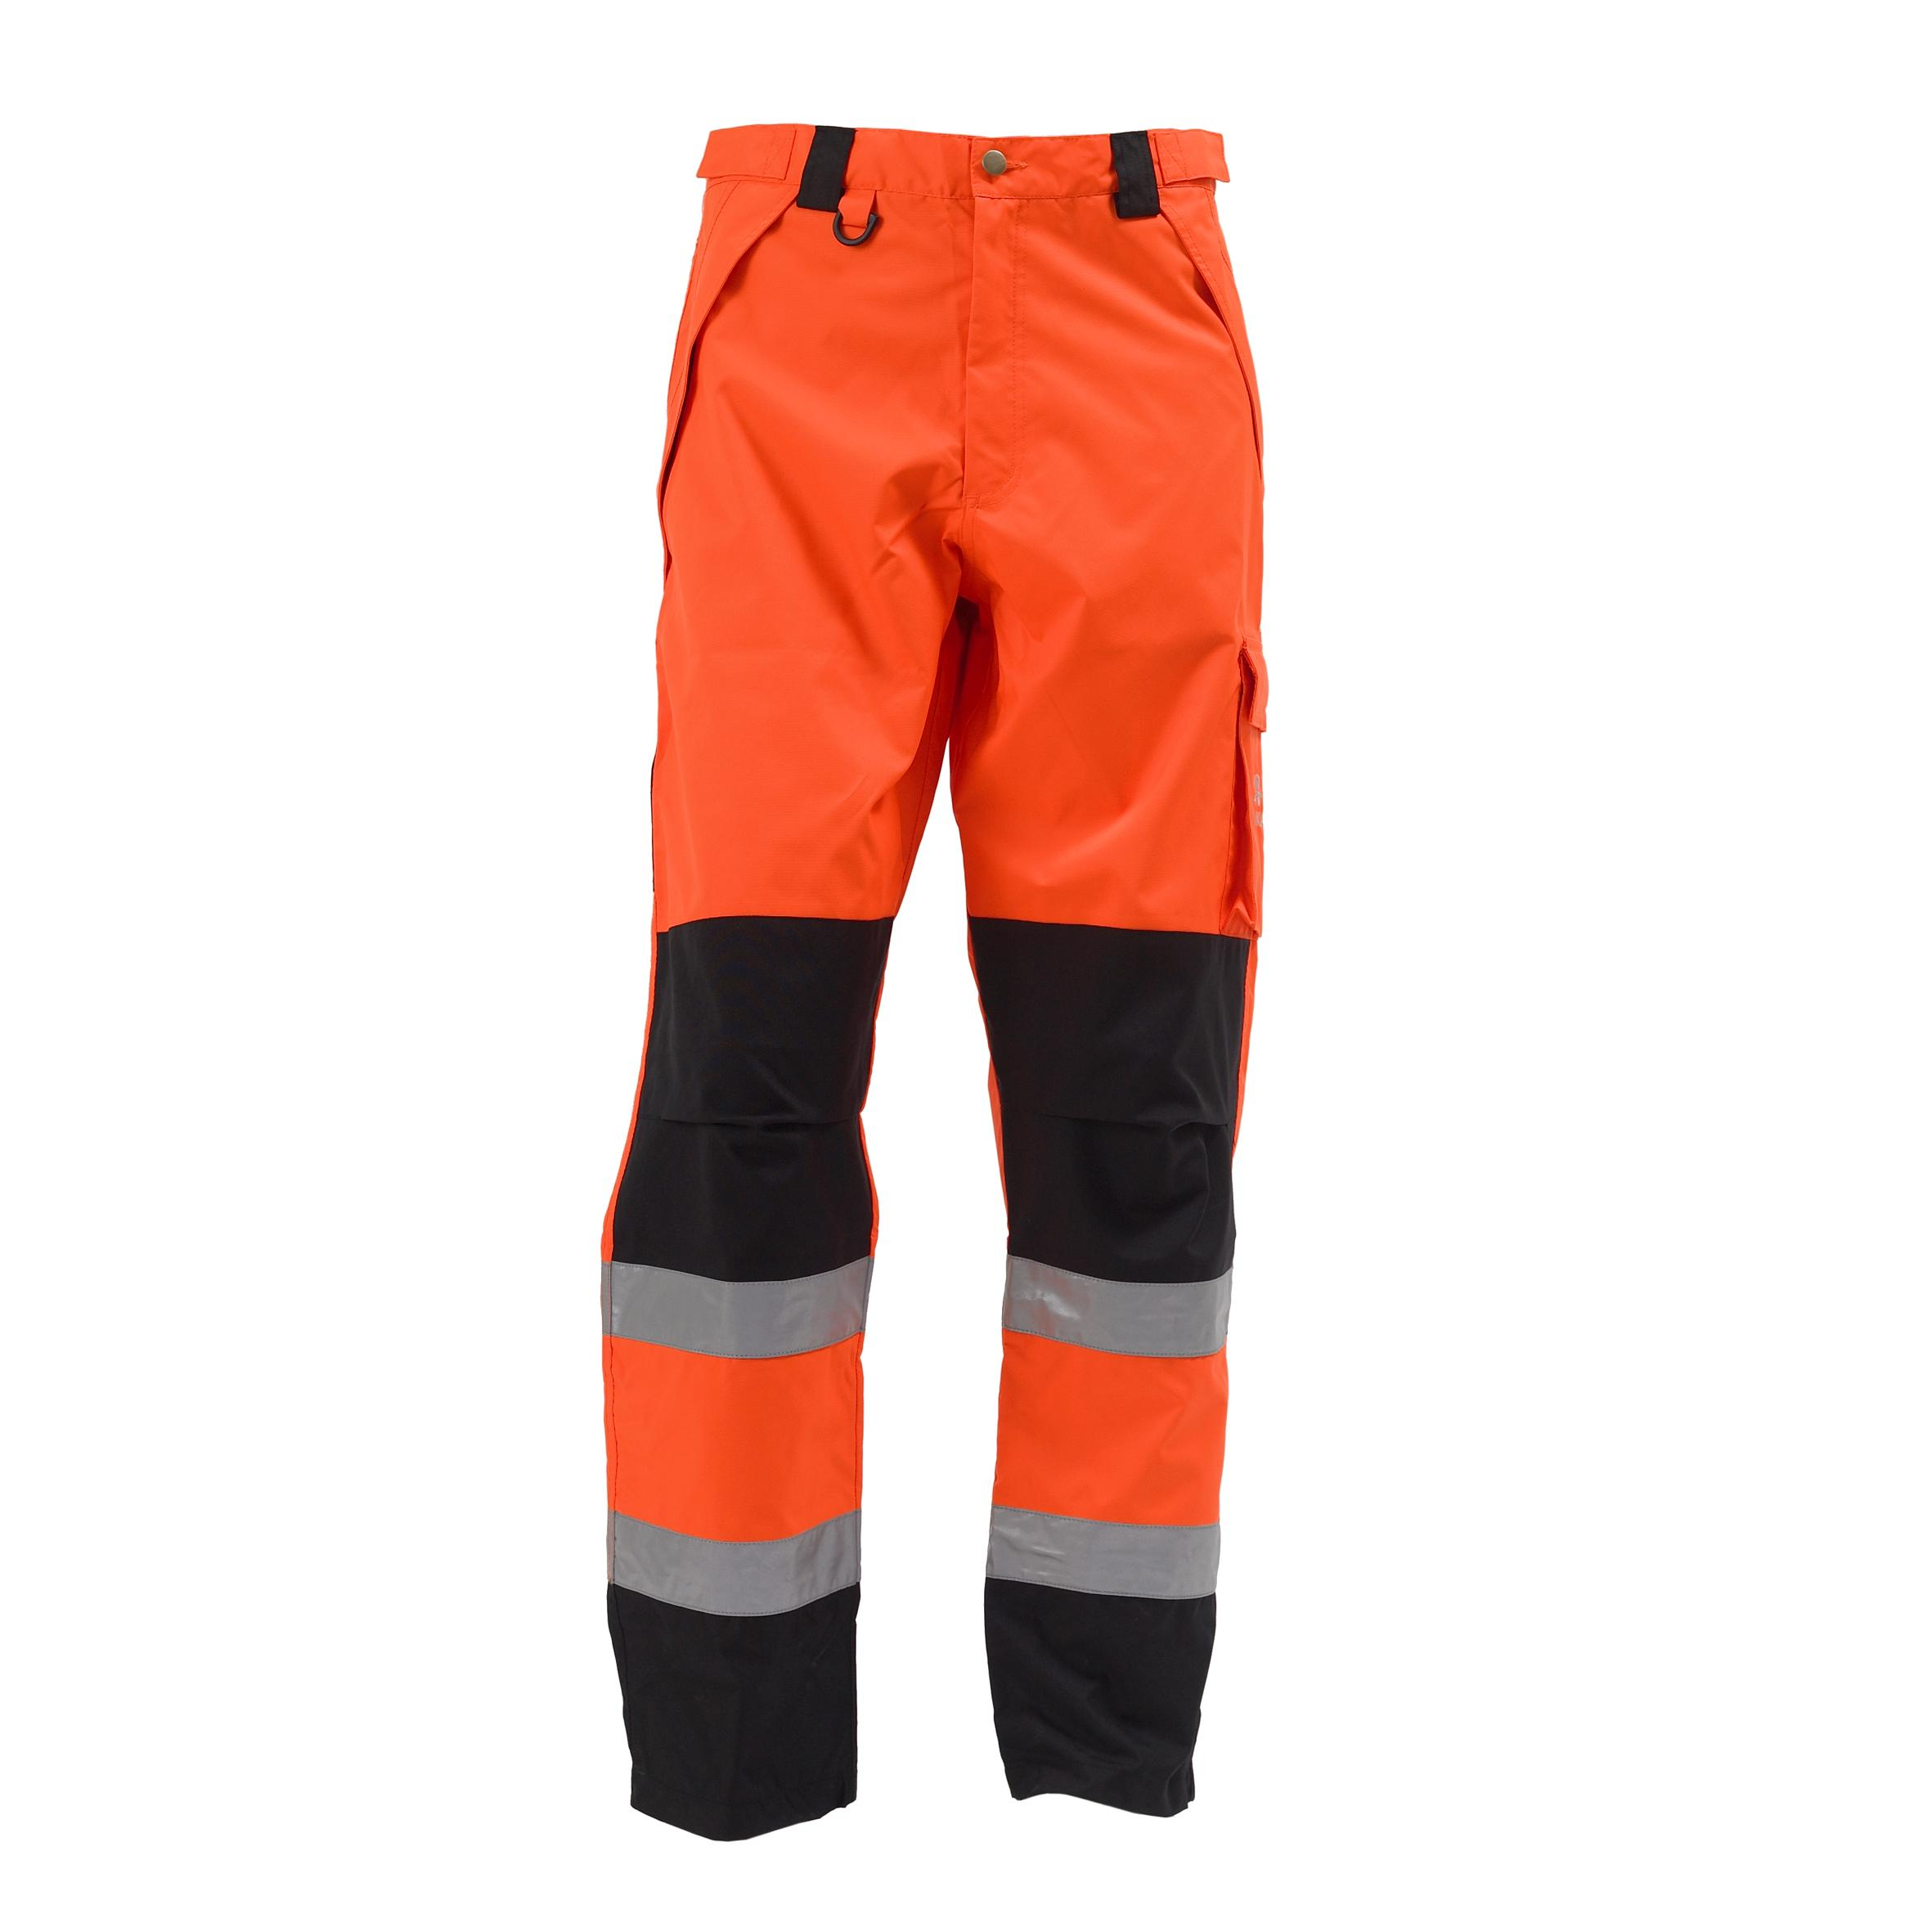 Hi-Visibility Trousers